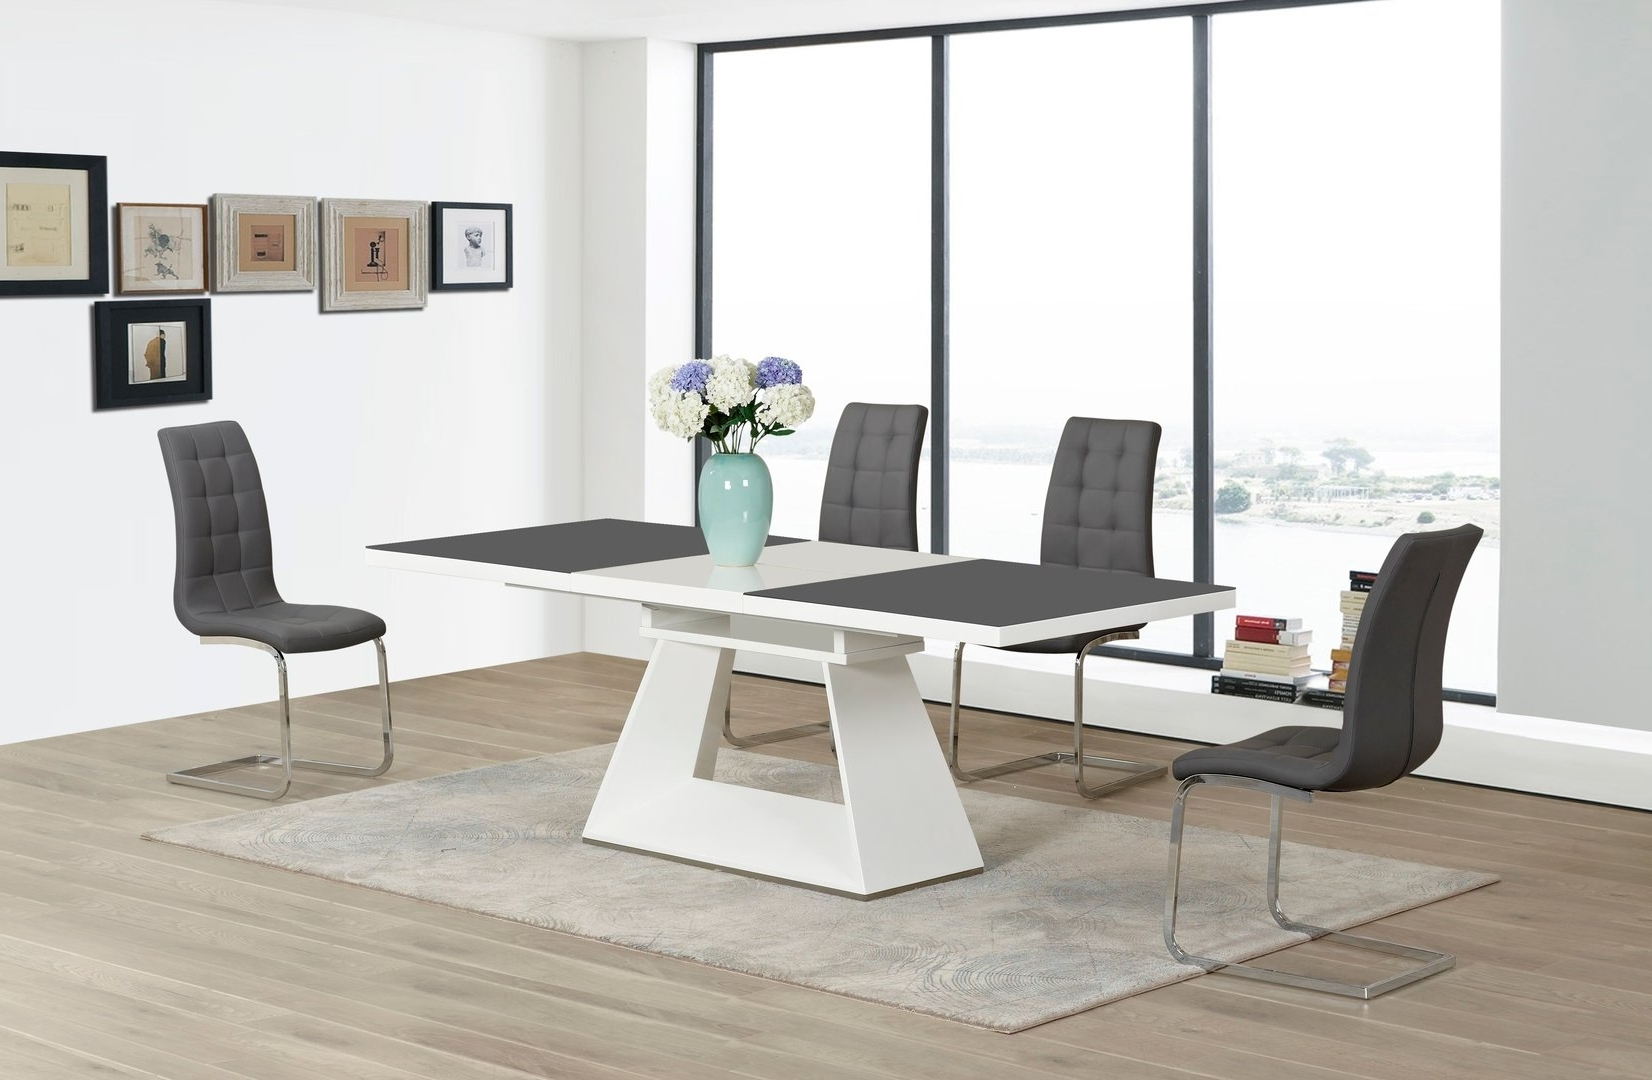 Best And Newest Grey / White Extending High Gloss Glass Dining Table And 6 Chairs For Extending Glass Dining Tables And 8 Chairs (View 4 of 25)